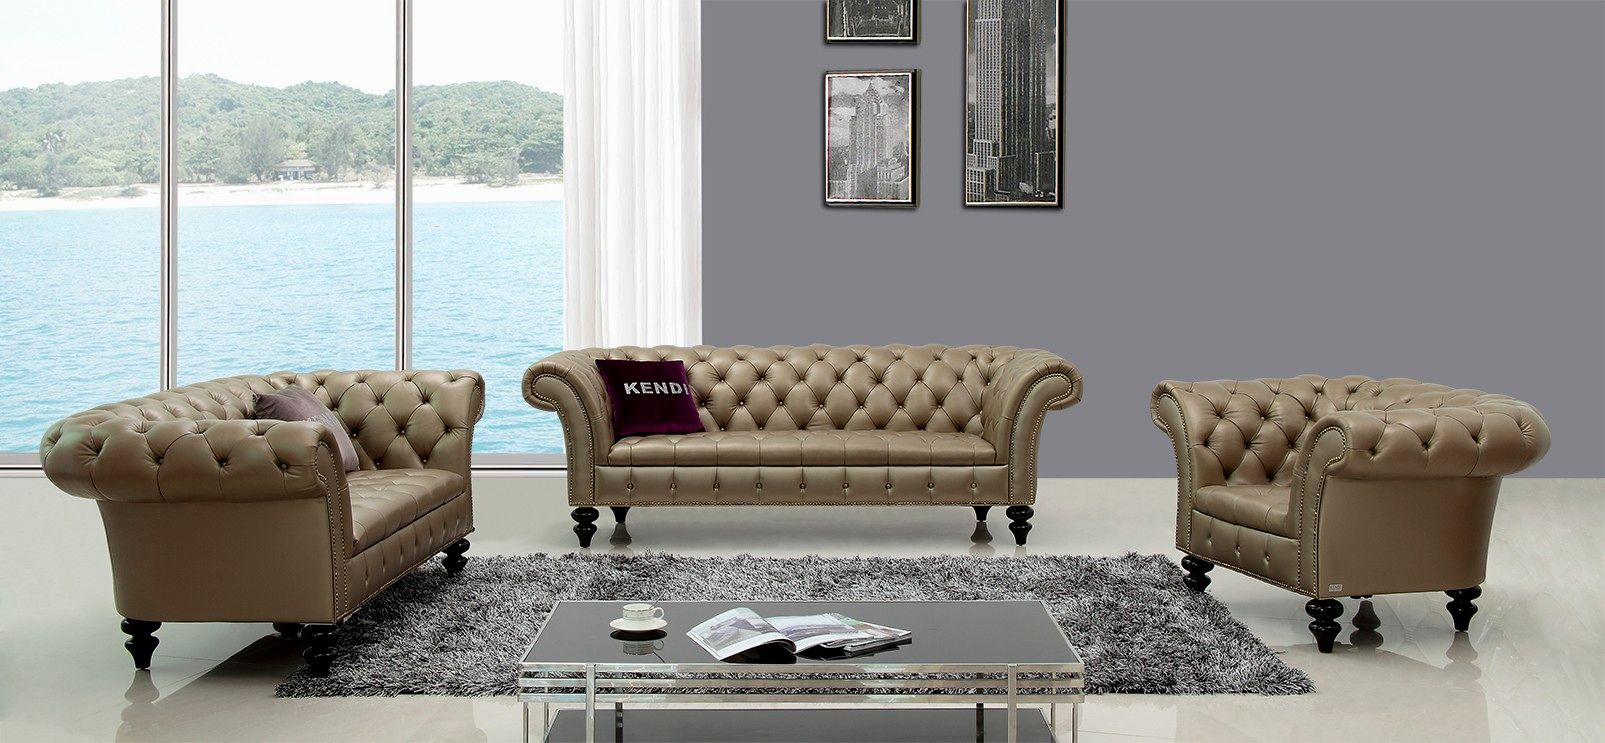 wonderful sectional leather sofas model-Unique Sectional Leather sofas Decoration